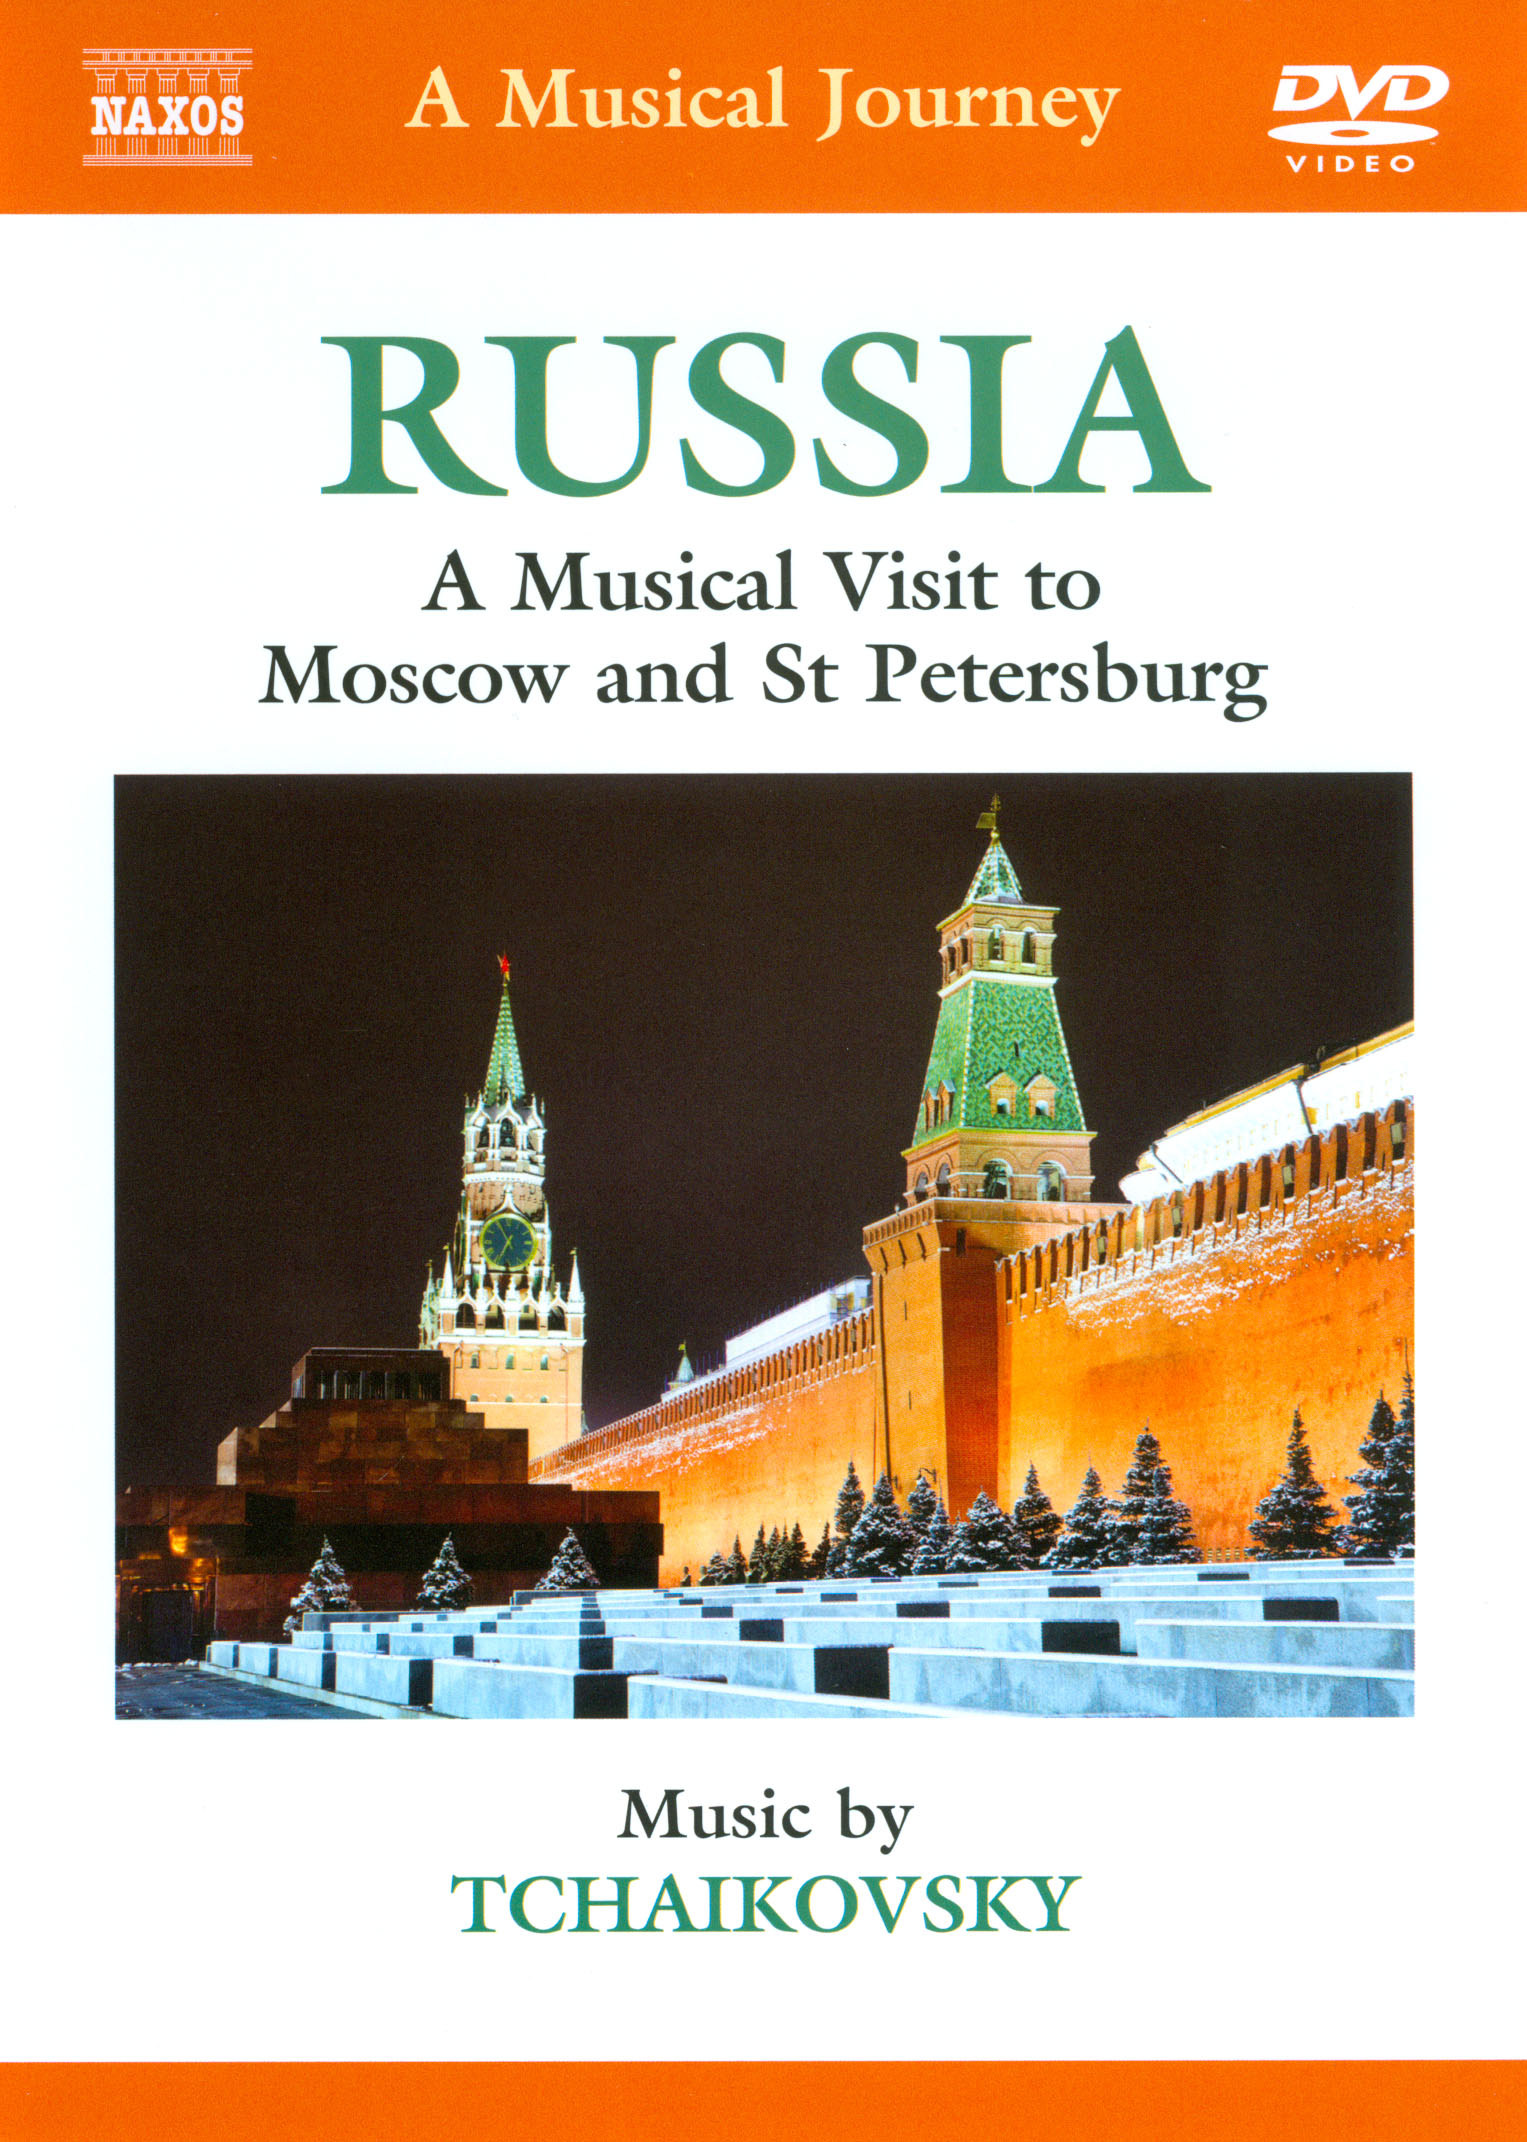 A Musical Journey: Russia - A Musical Visit to Moscow and St. Petersburg